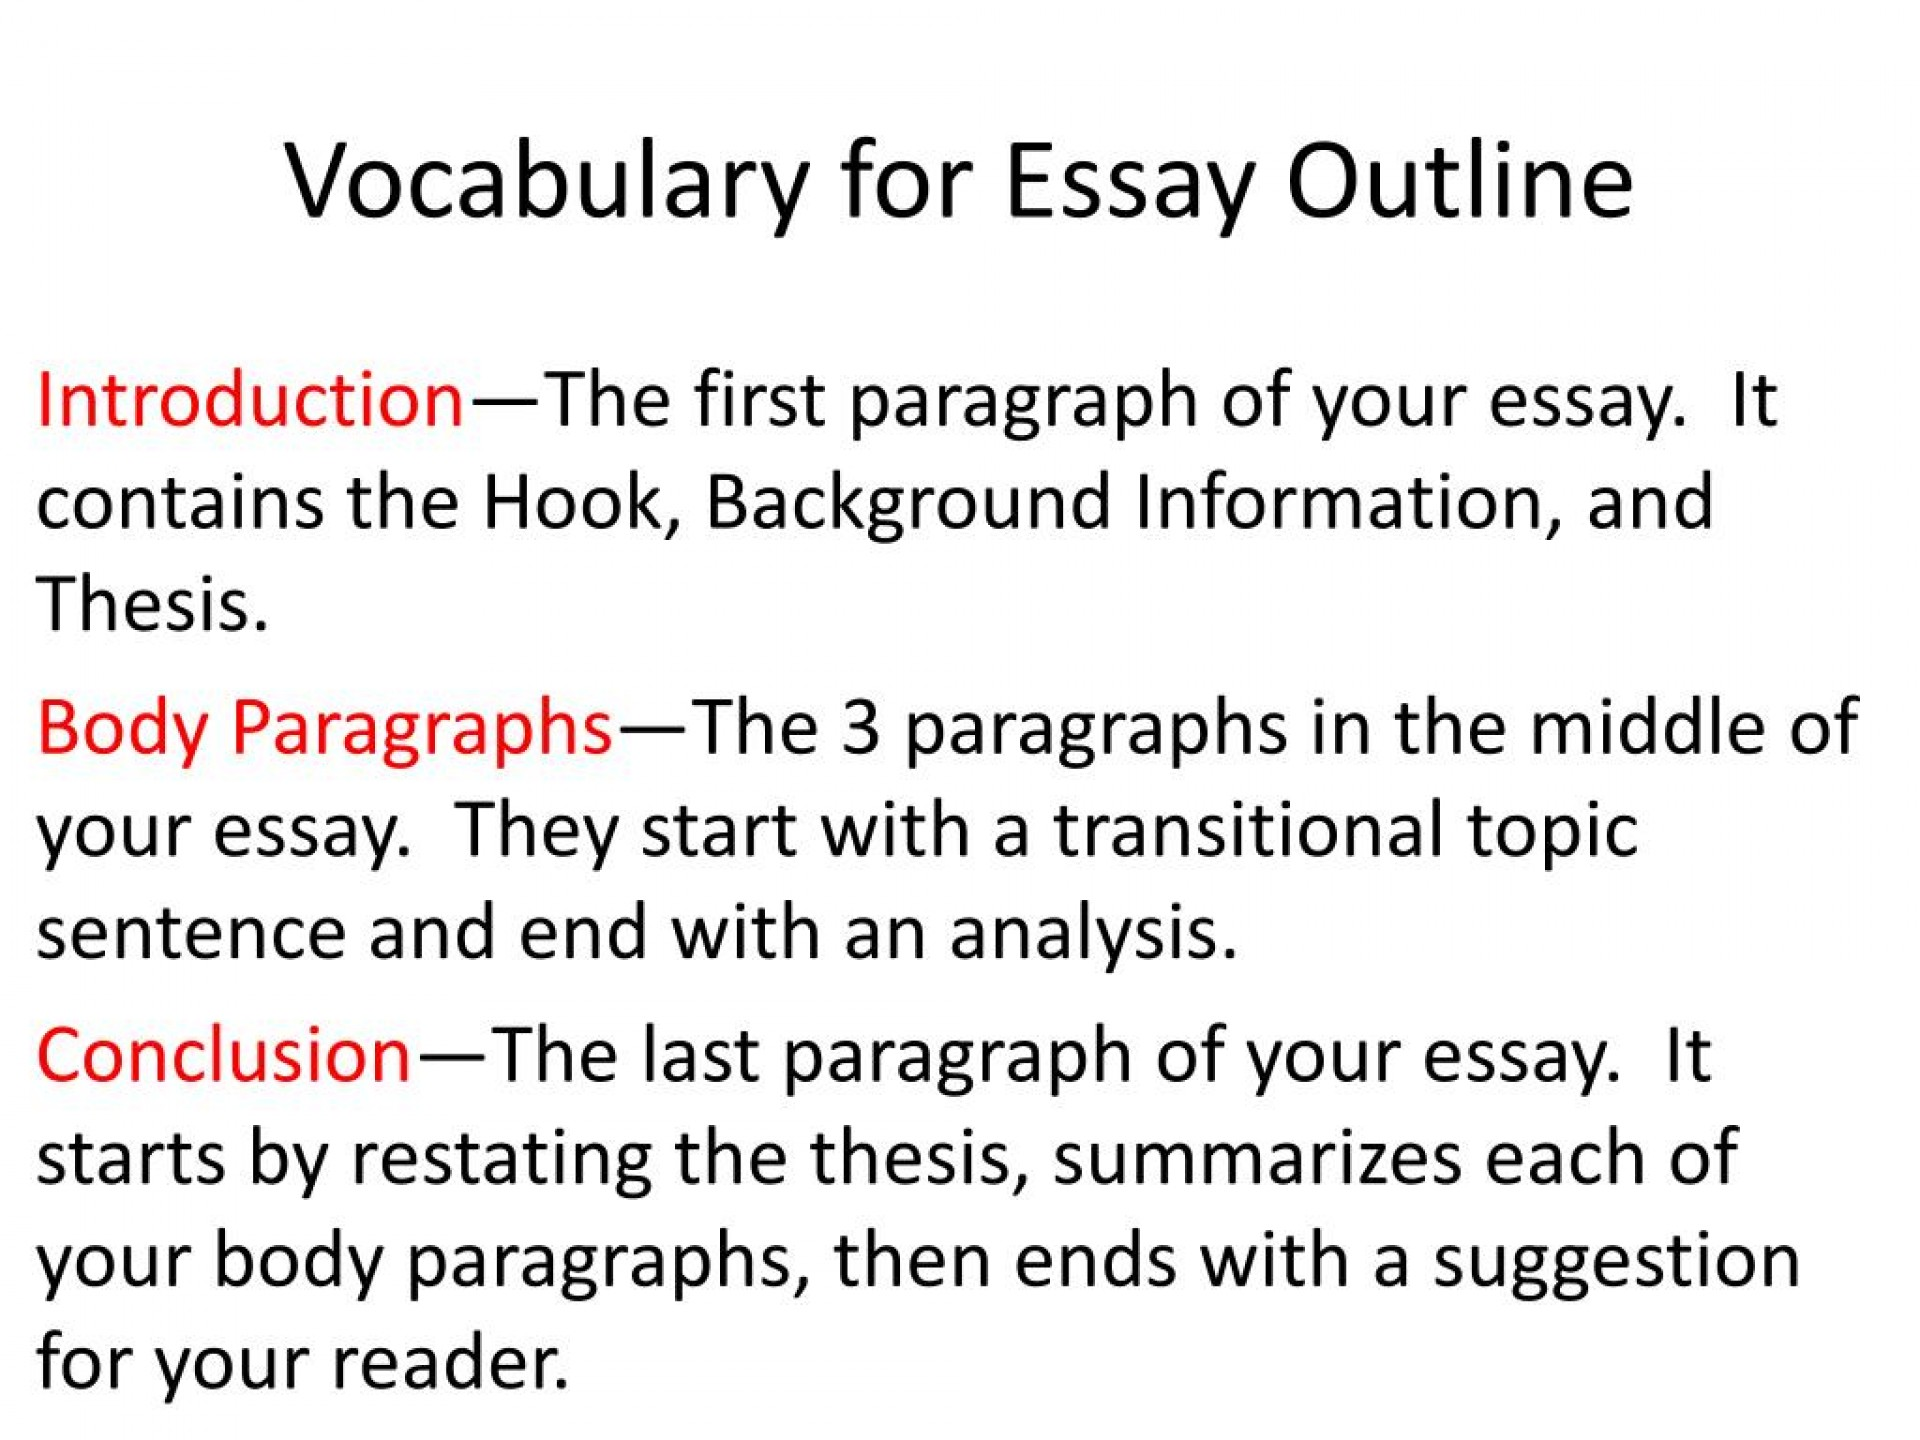 019 Vocabulary For Essay Outline L First Paragraph Of An Awful Apa Should You Indent The Is Called 1920